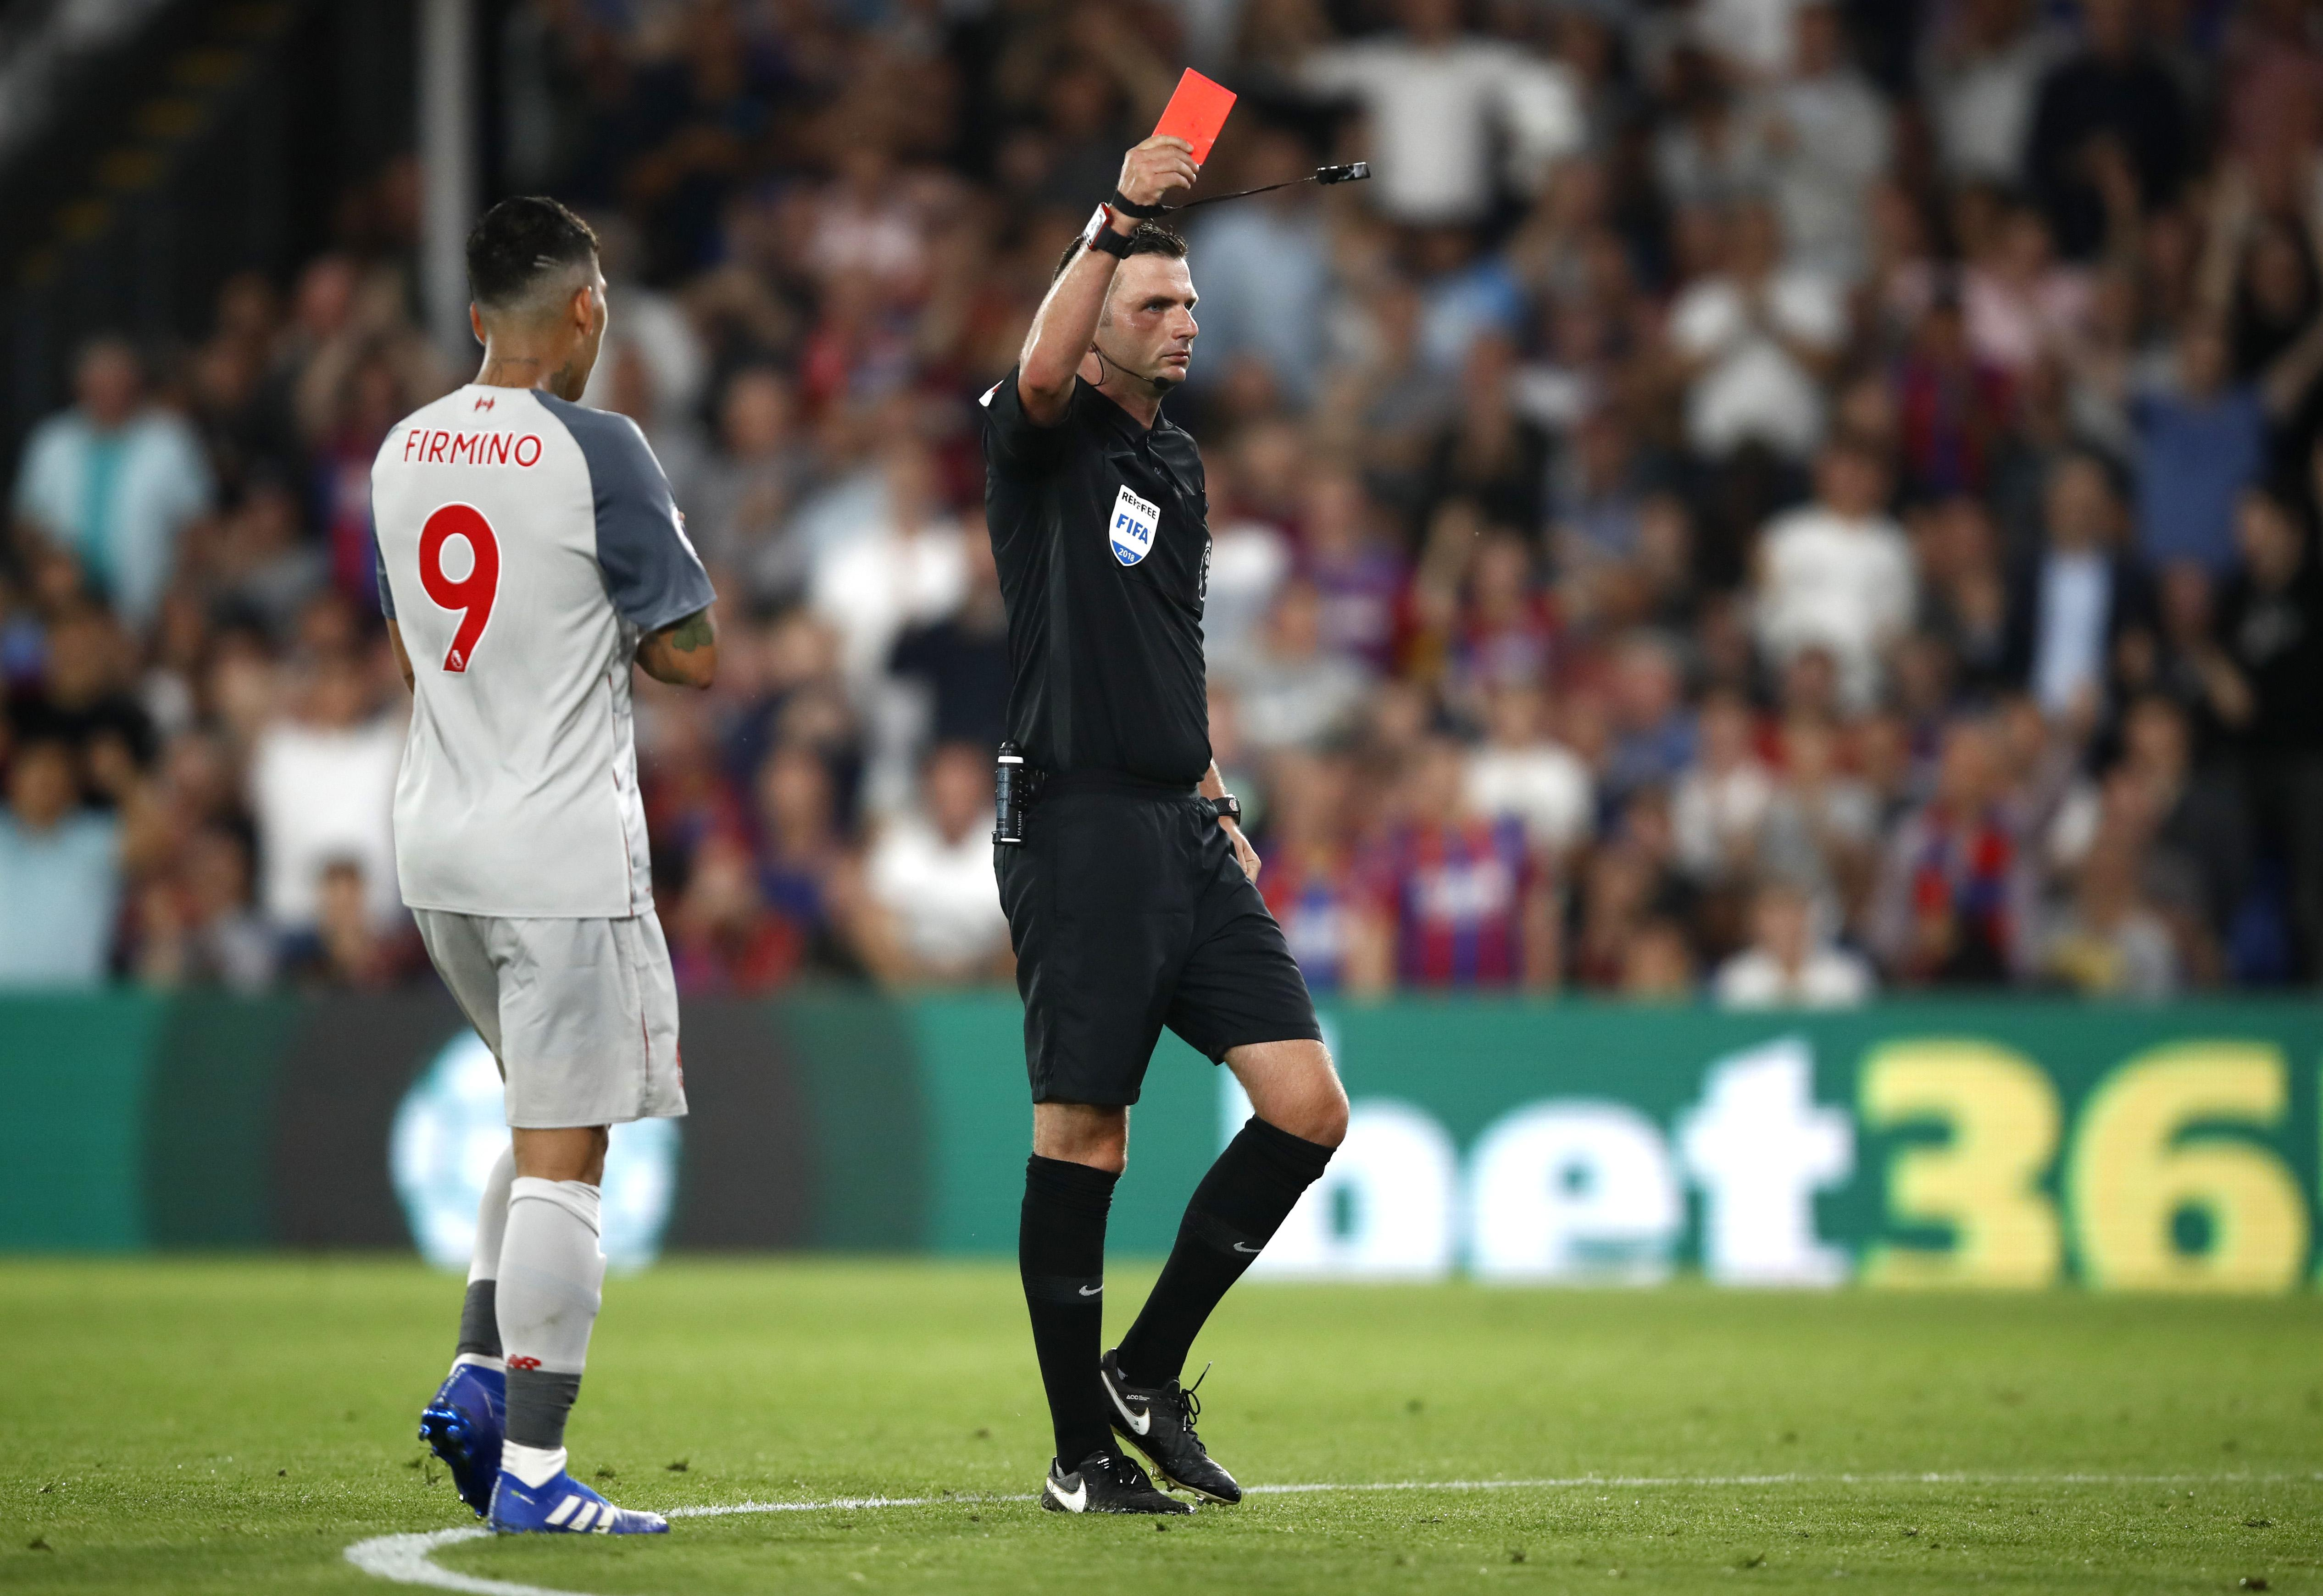 Leaving Michael Oliver with little choice but to send him off